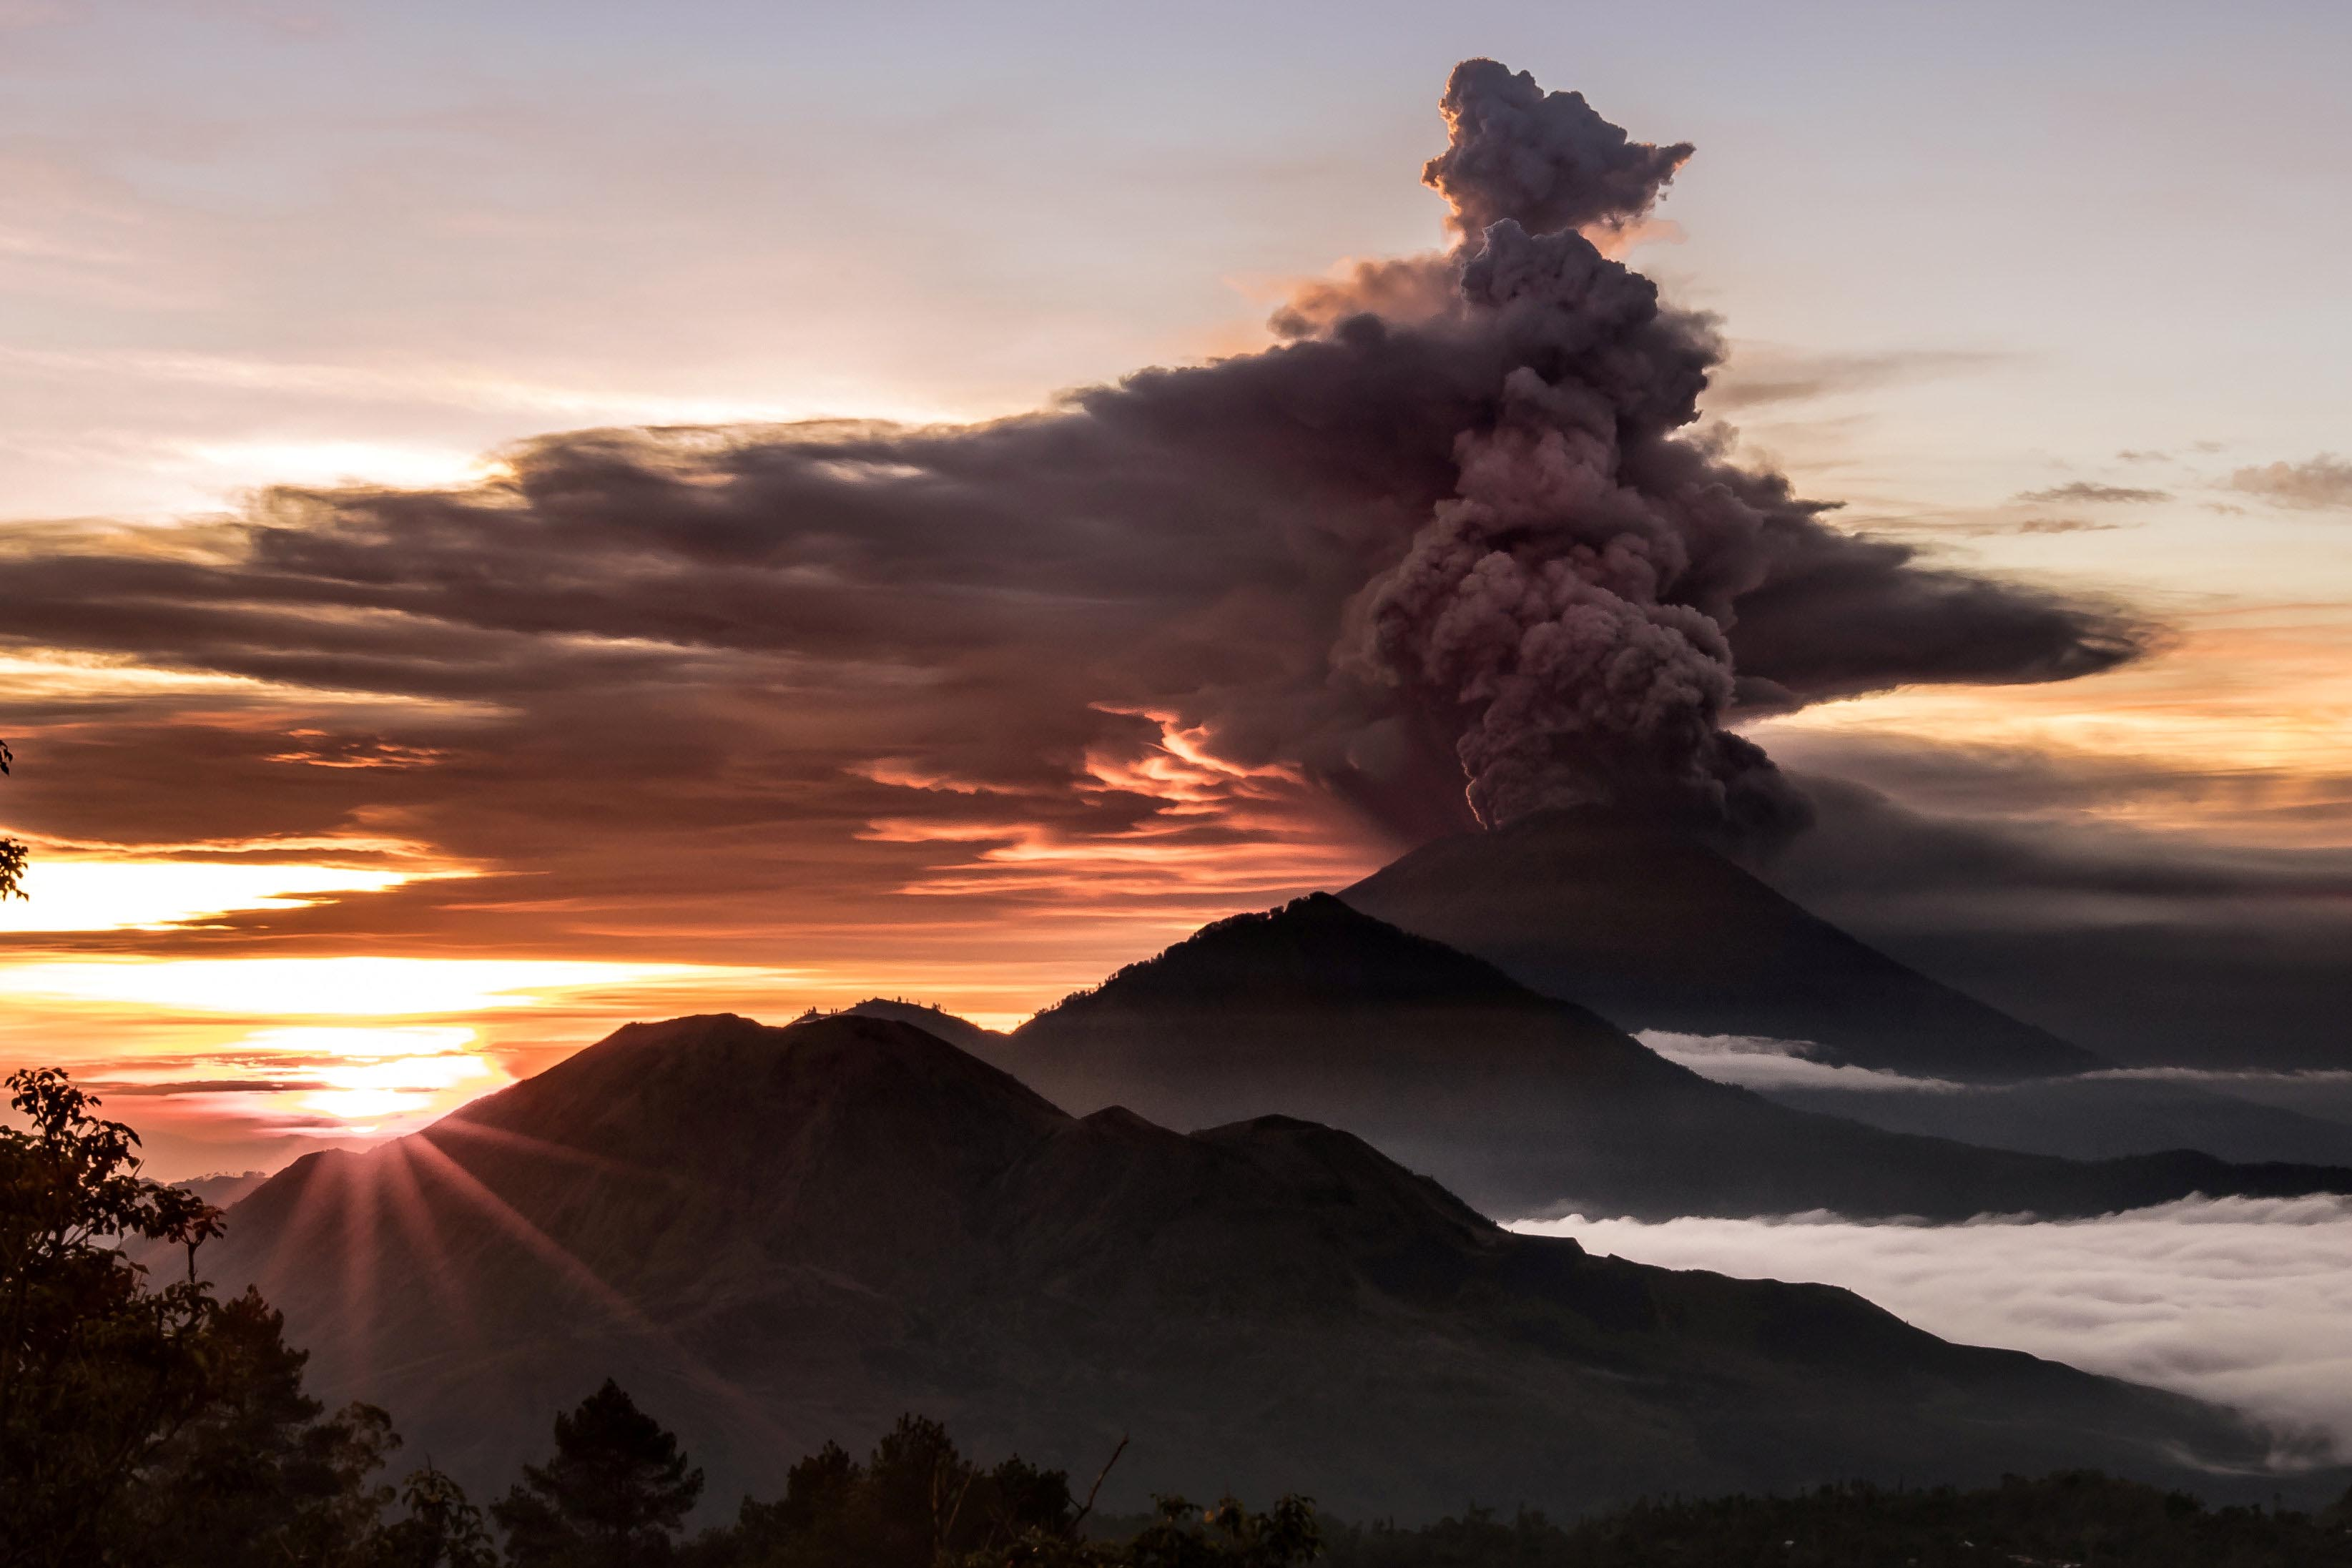 Mount Agung volcano is seen spewing smoke and ash in Bali, Indonesia, on November 26, 2017 in this picture obtained from social media. Photo: EMILIO KUZMA-FLOYD via Reuters